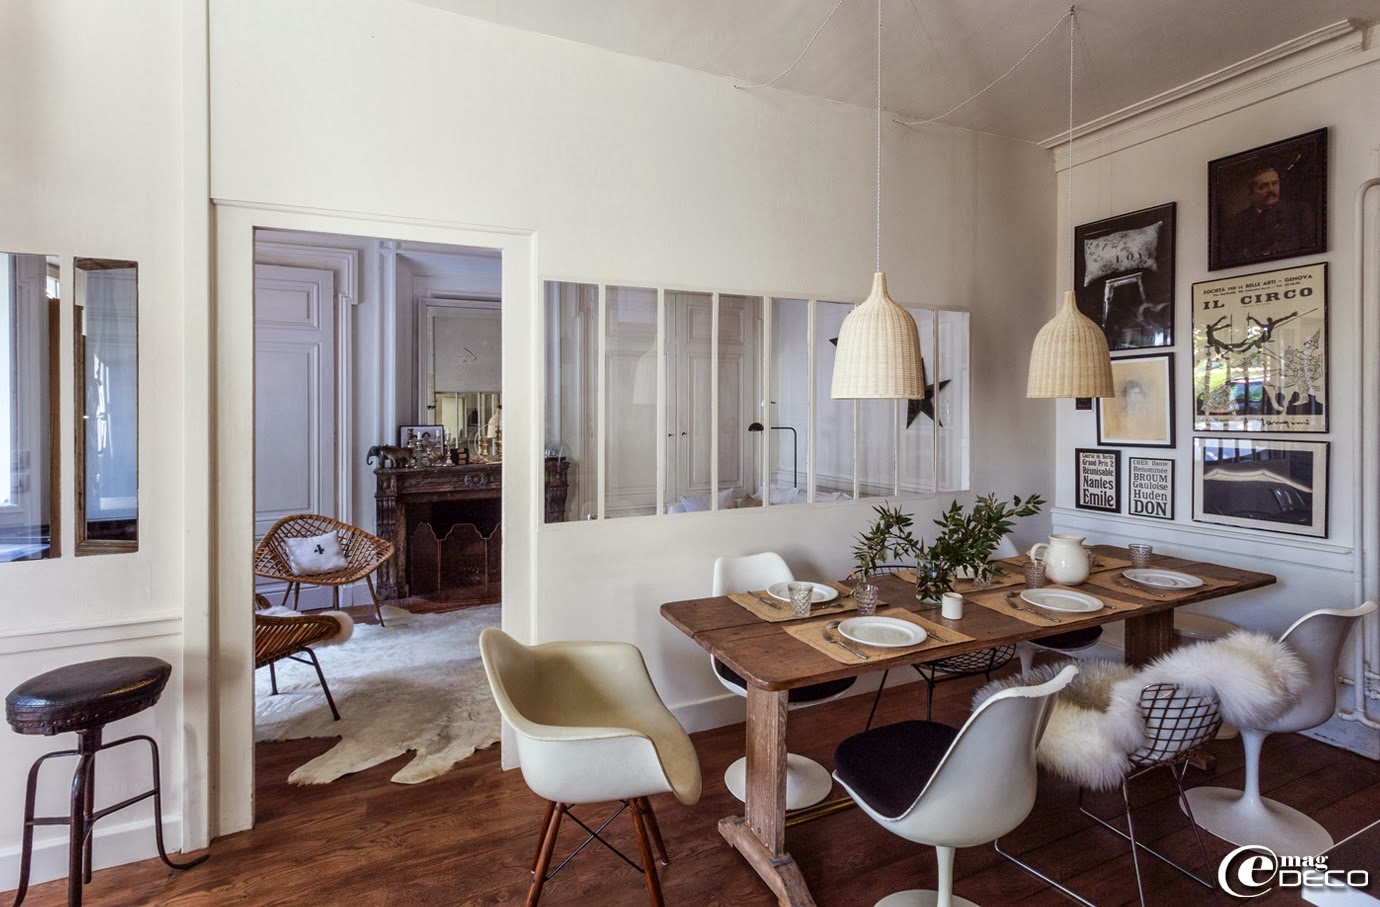 Interior decorative florence bouvier 39 s house in lyon for Chaises design pour salle a manger